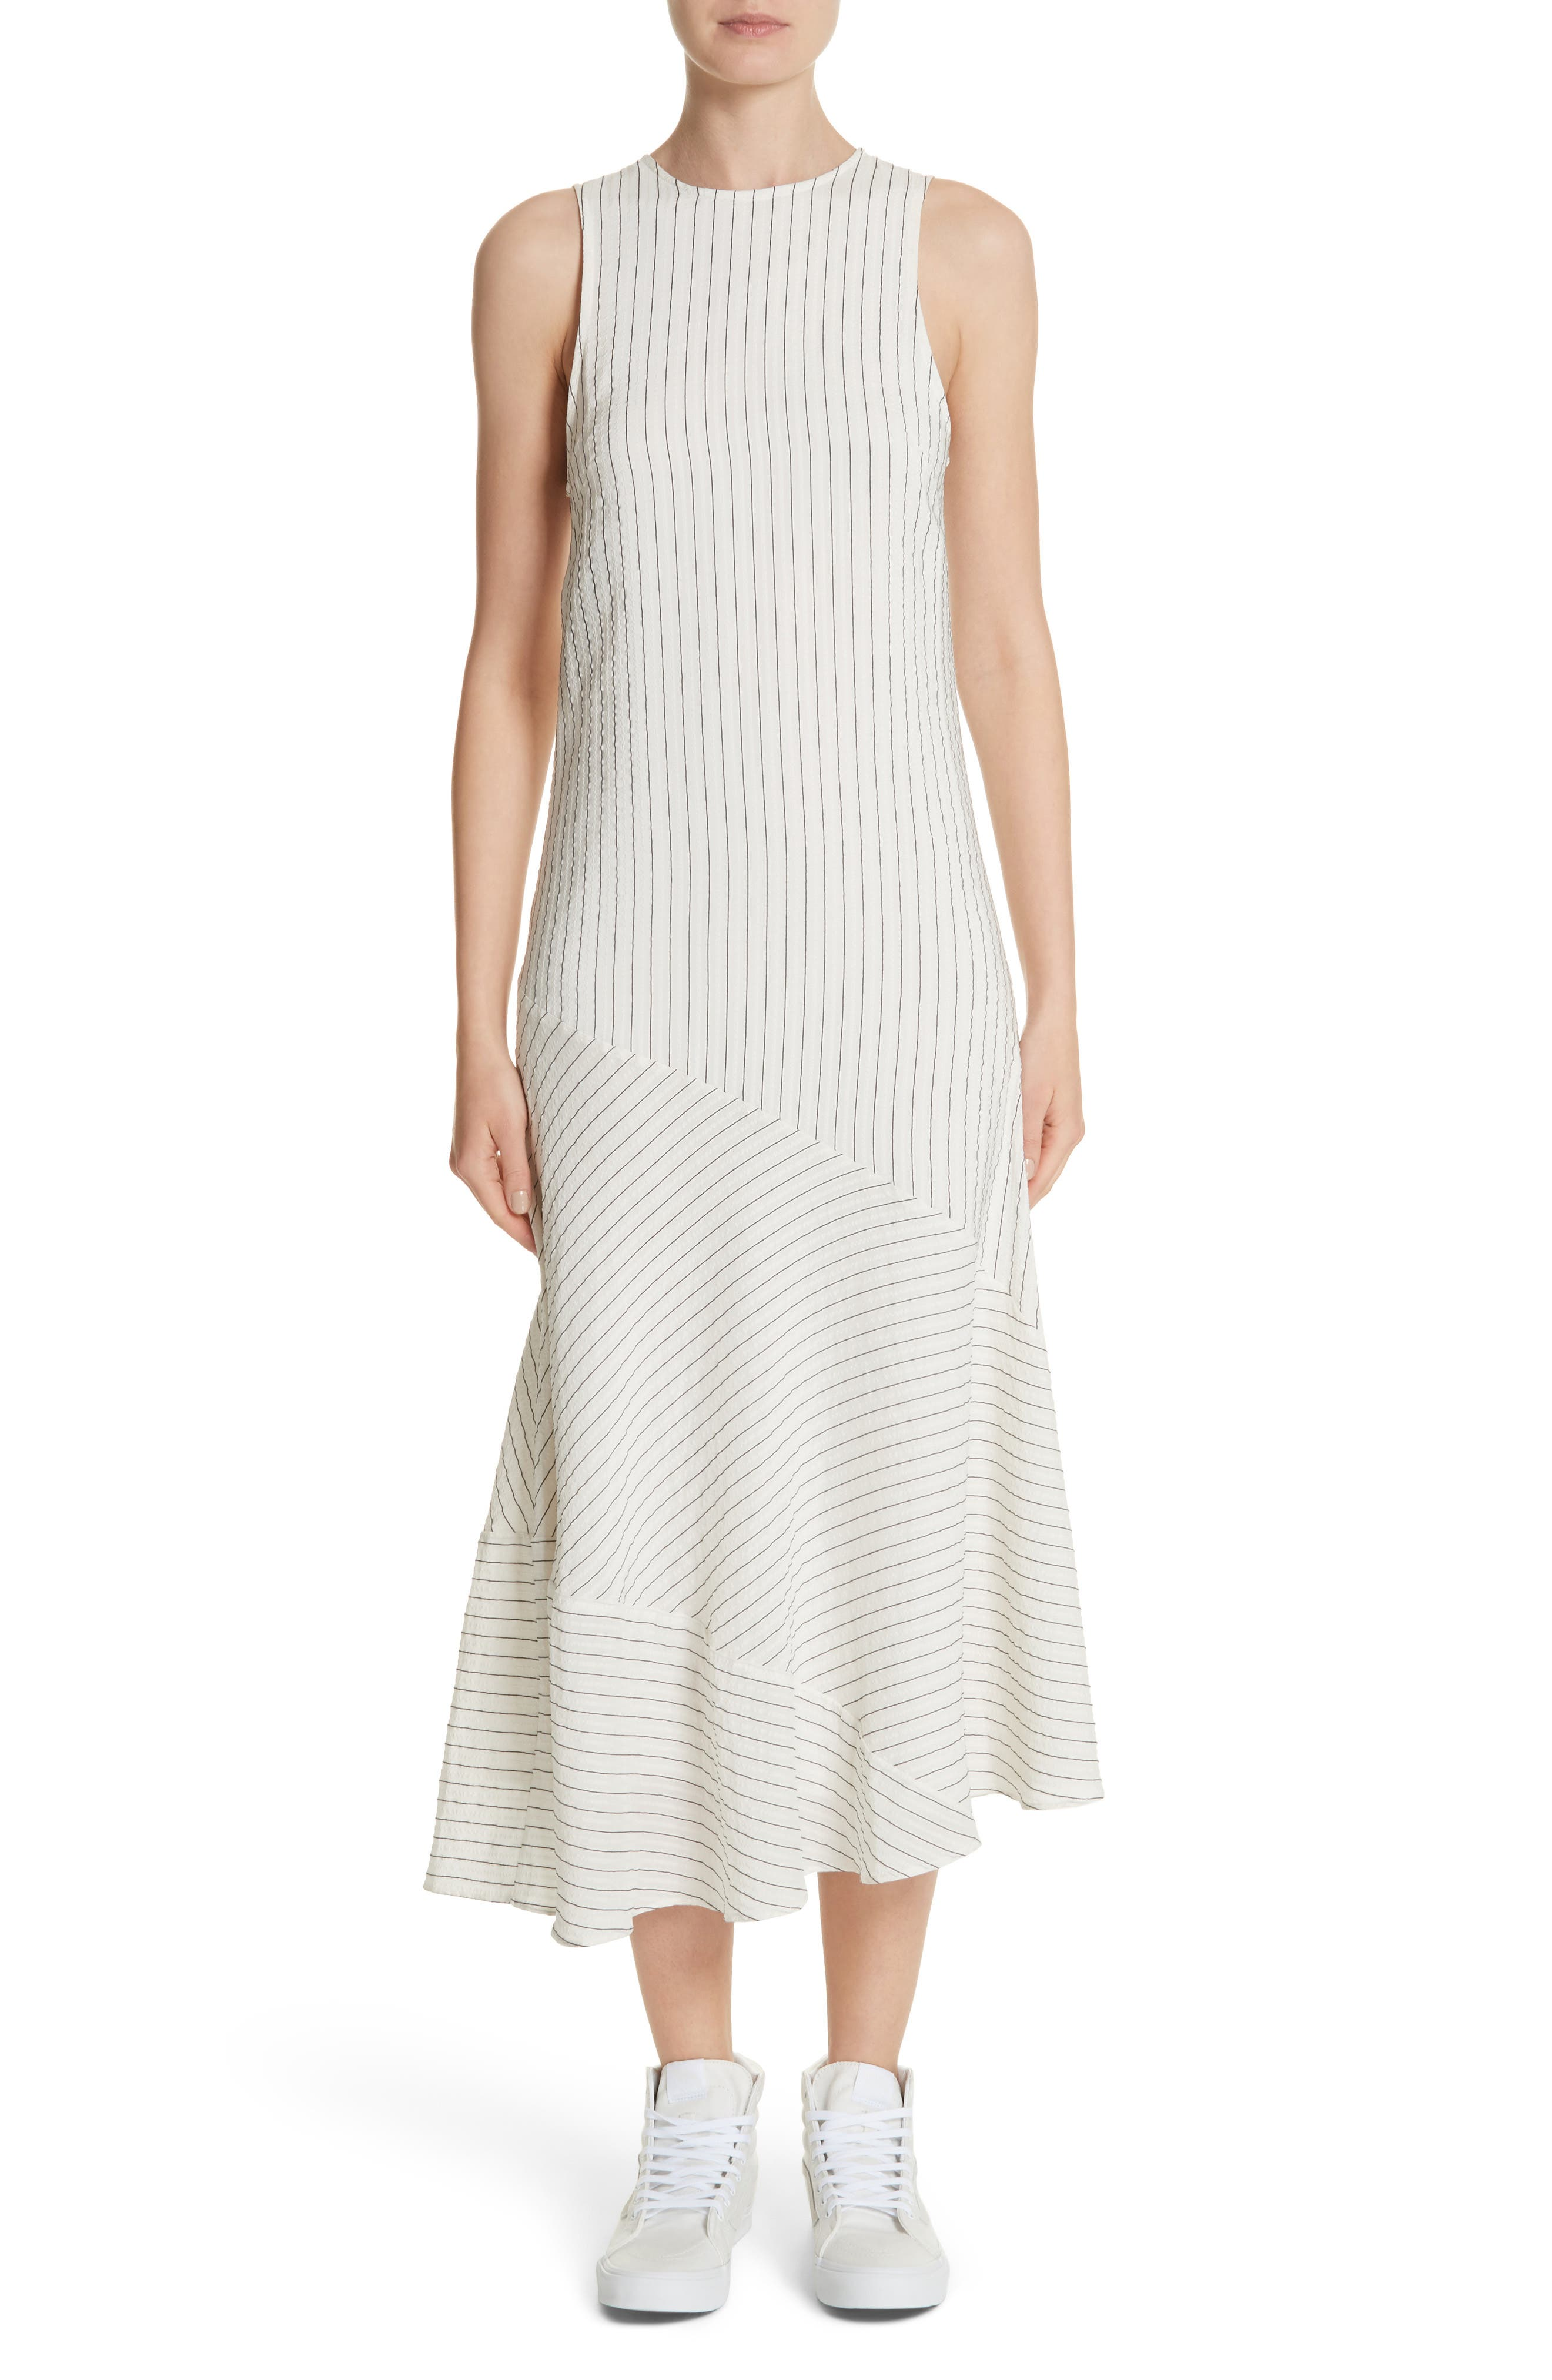 Wilkie Seersucker Striped Sheath Dress,                             Main thumbnail 1, color,                             900